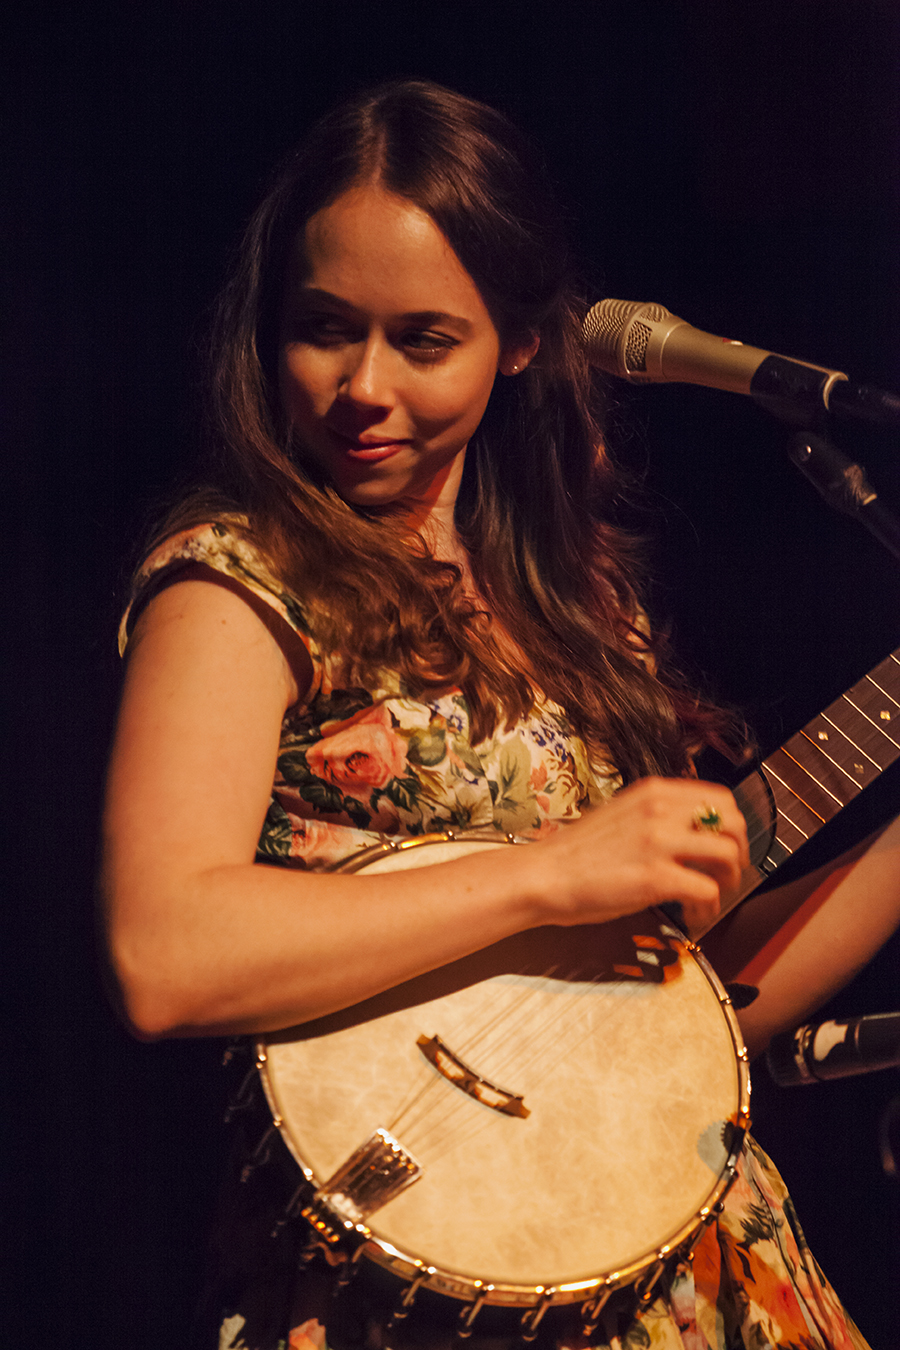 Sarah Jarosz at Mississippi Studios, Portland, Oregon, 2011. photo by Hermon joyner.